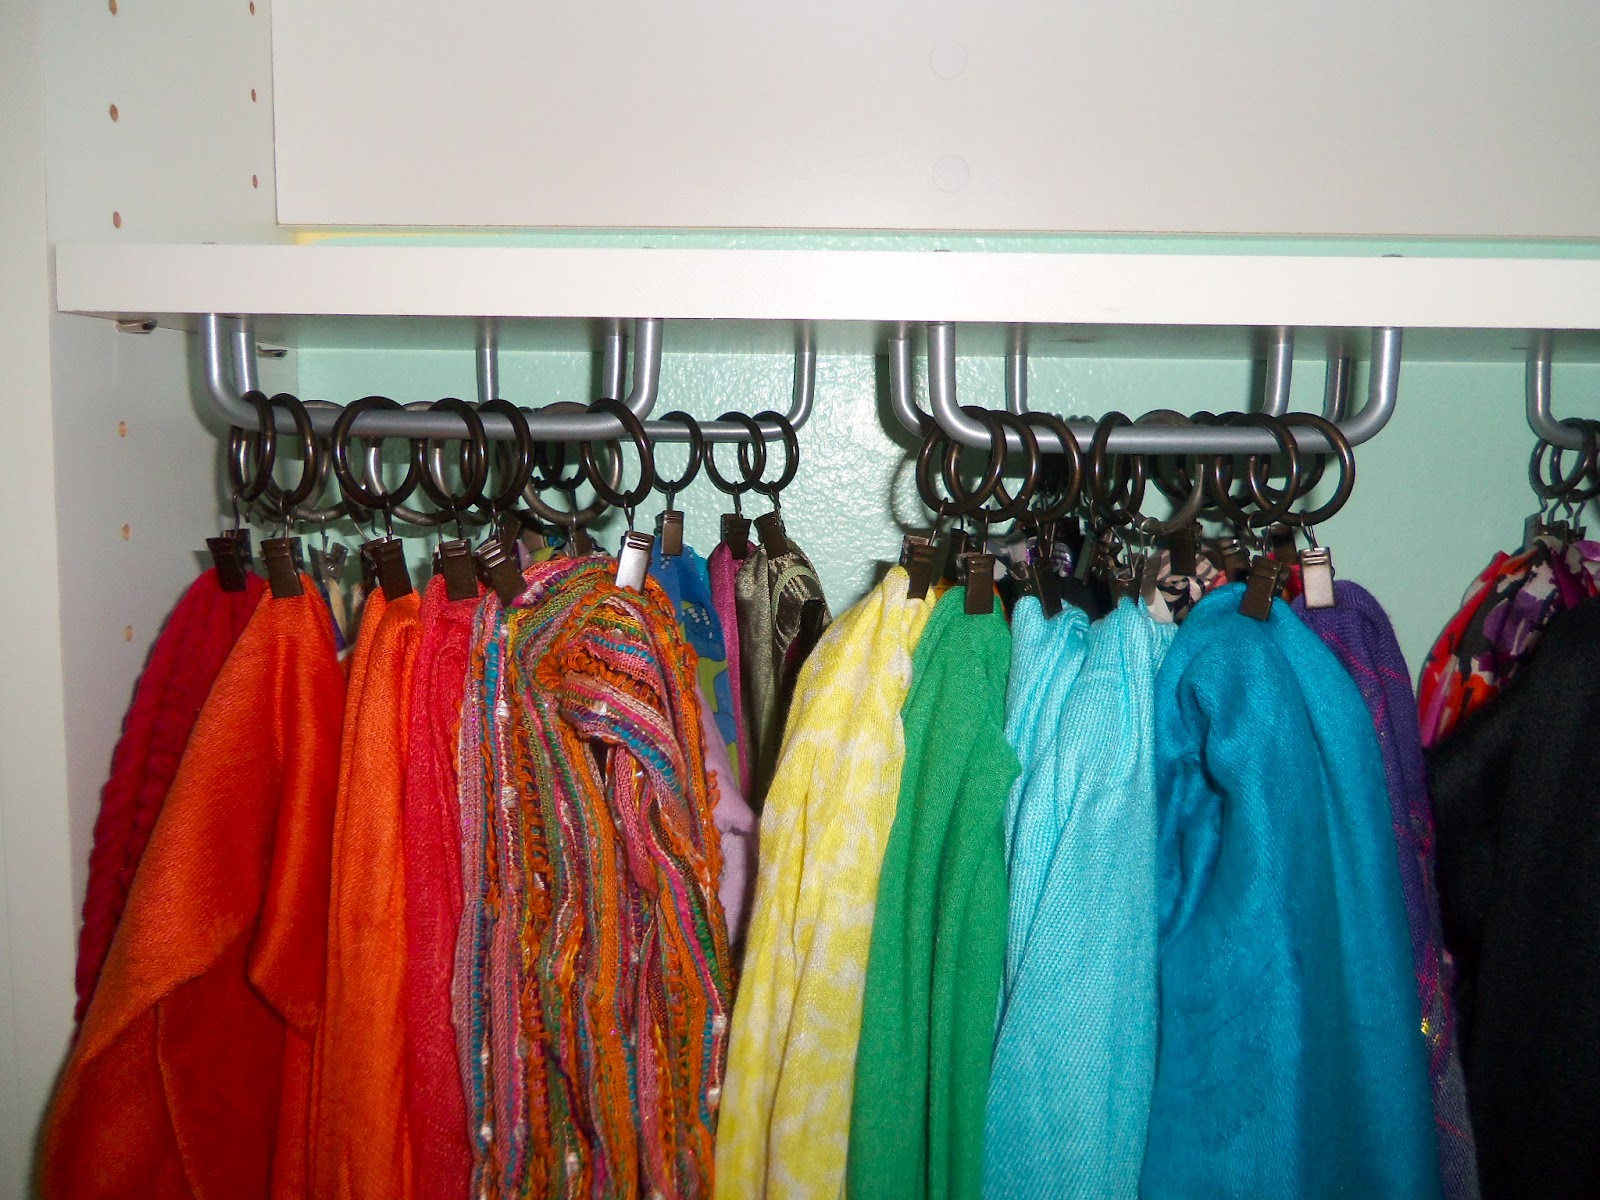 Third Time's the Charm: DIY Scarf Hanger